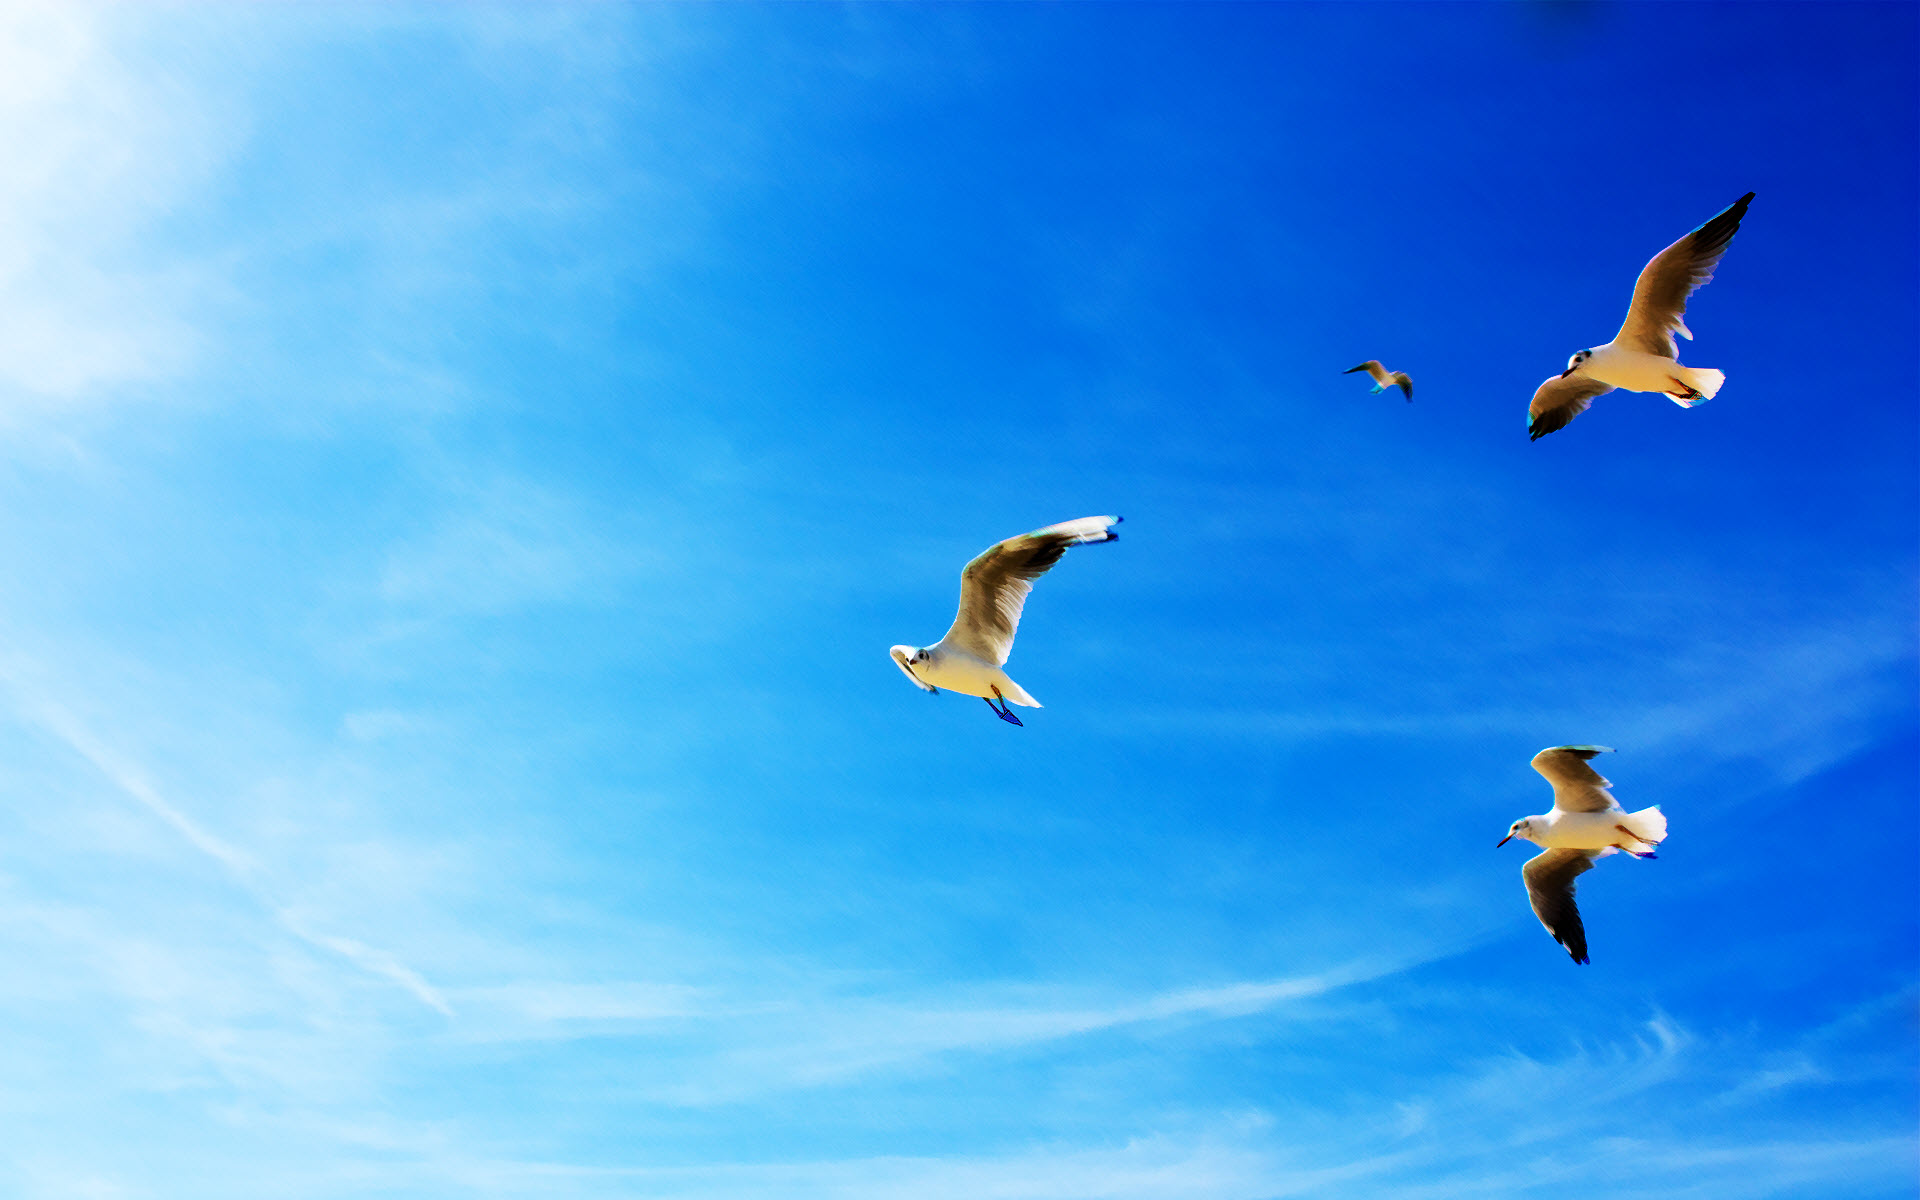 Seagulls in Flight 685.72 Kb